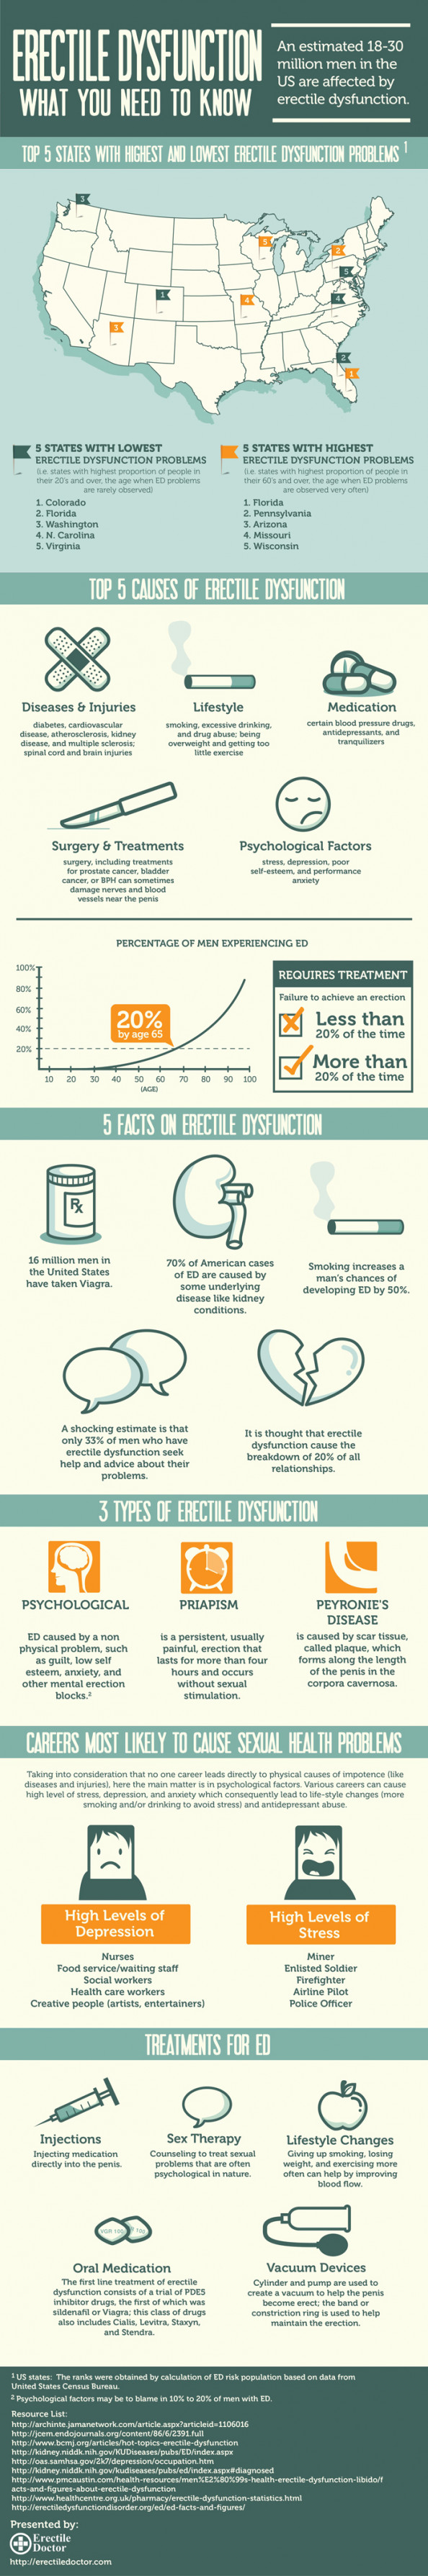 Erectile Dysfunction: What You Need To Know Infographic